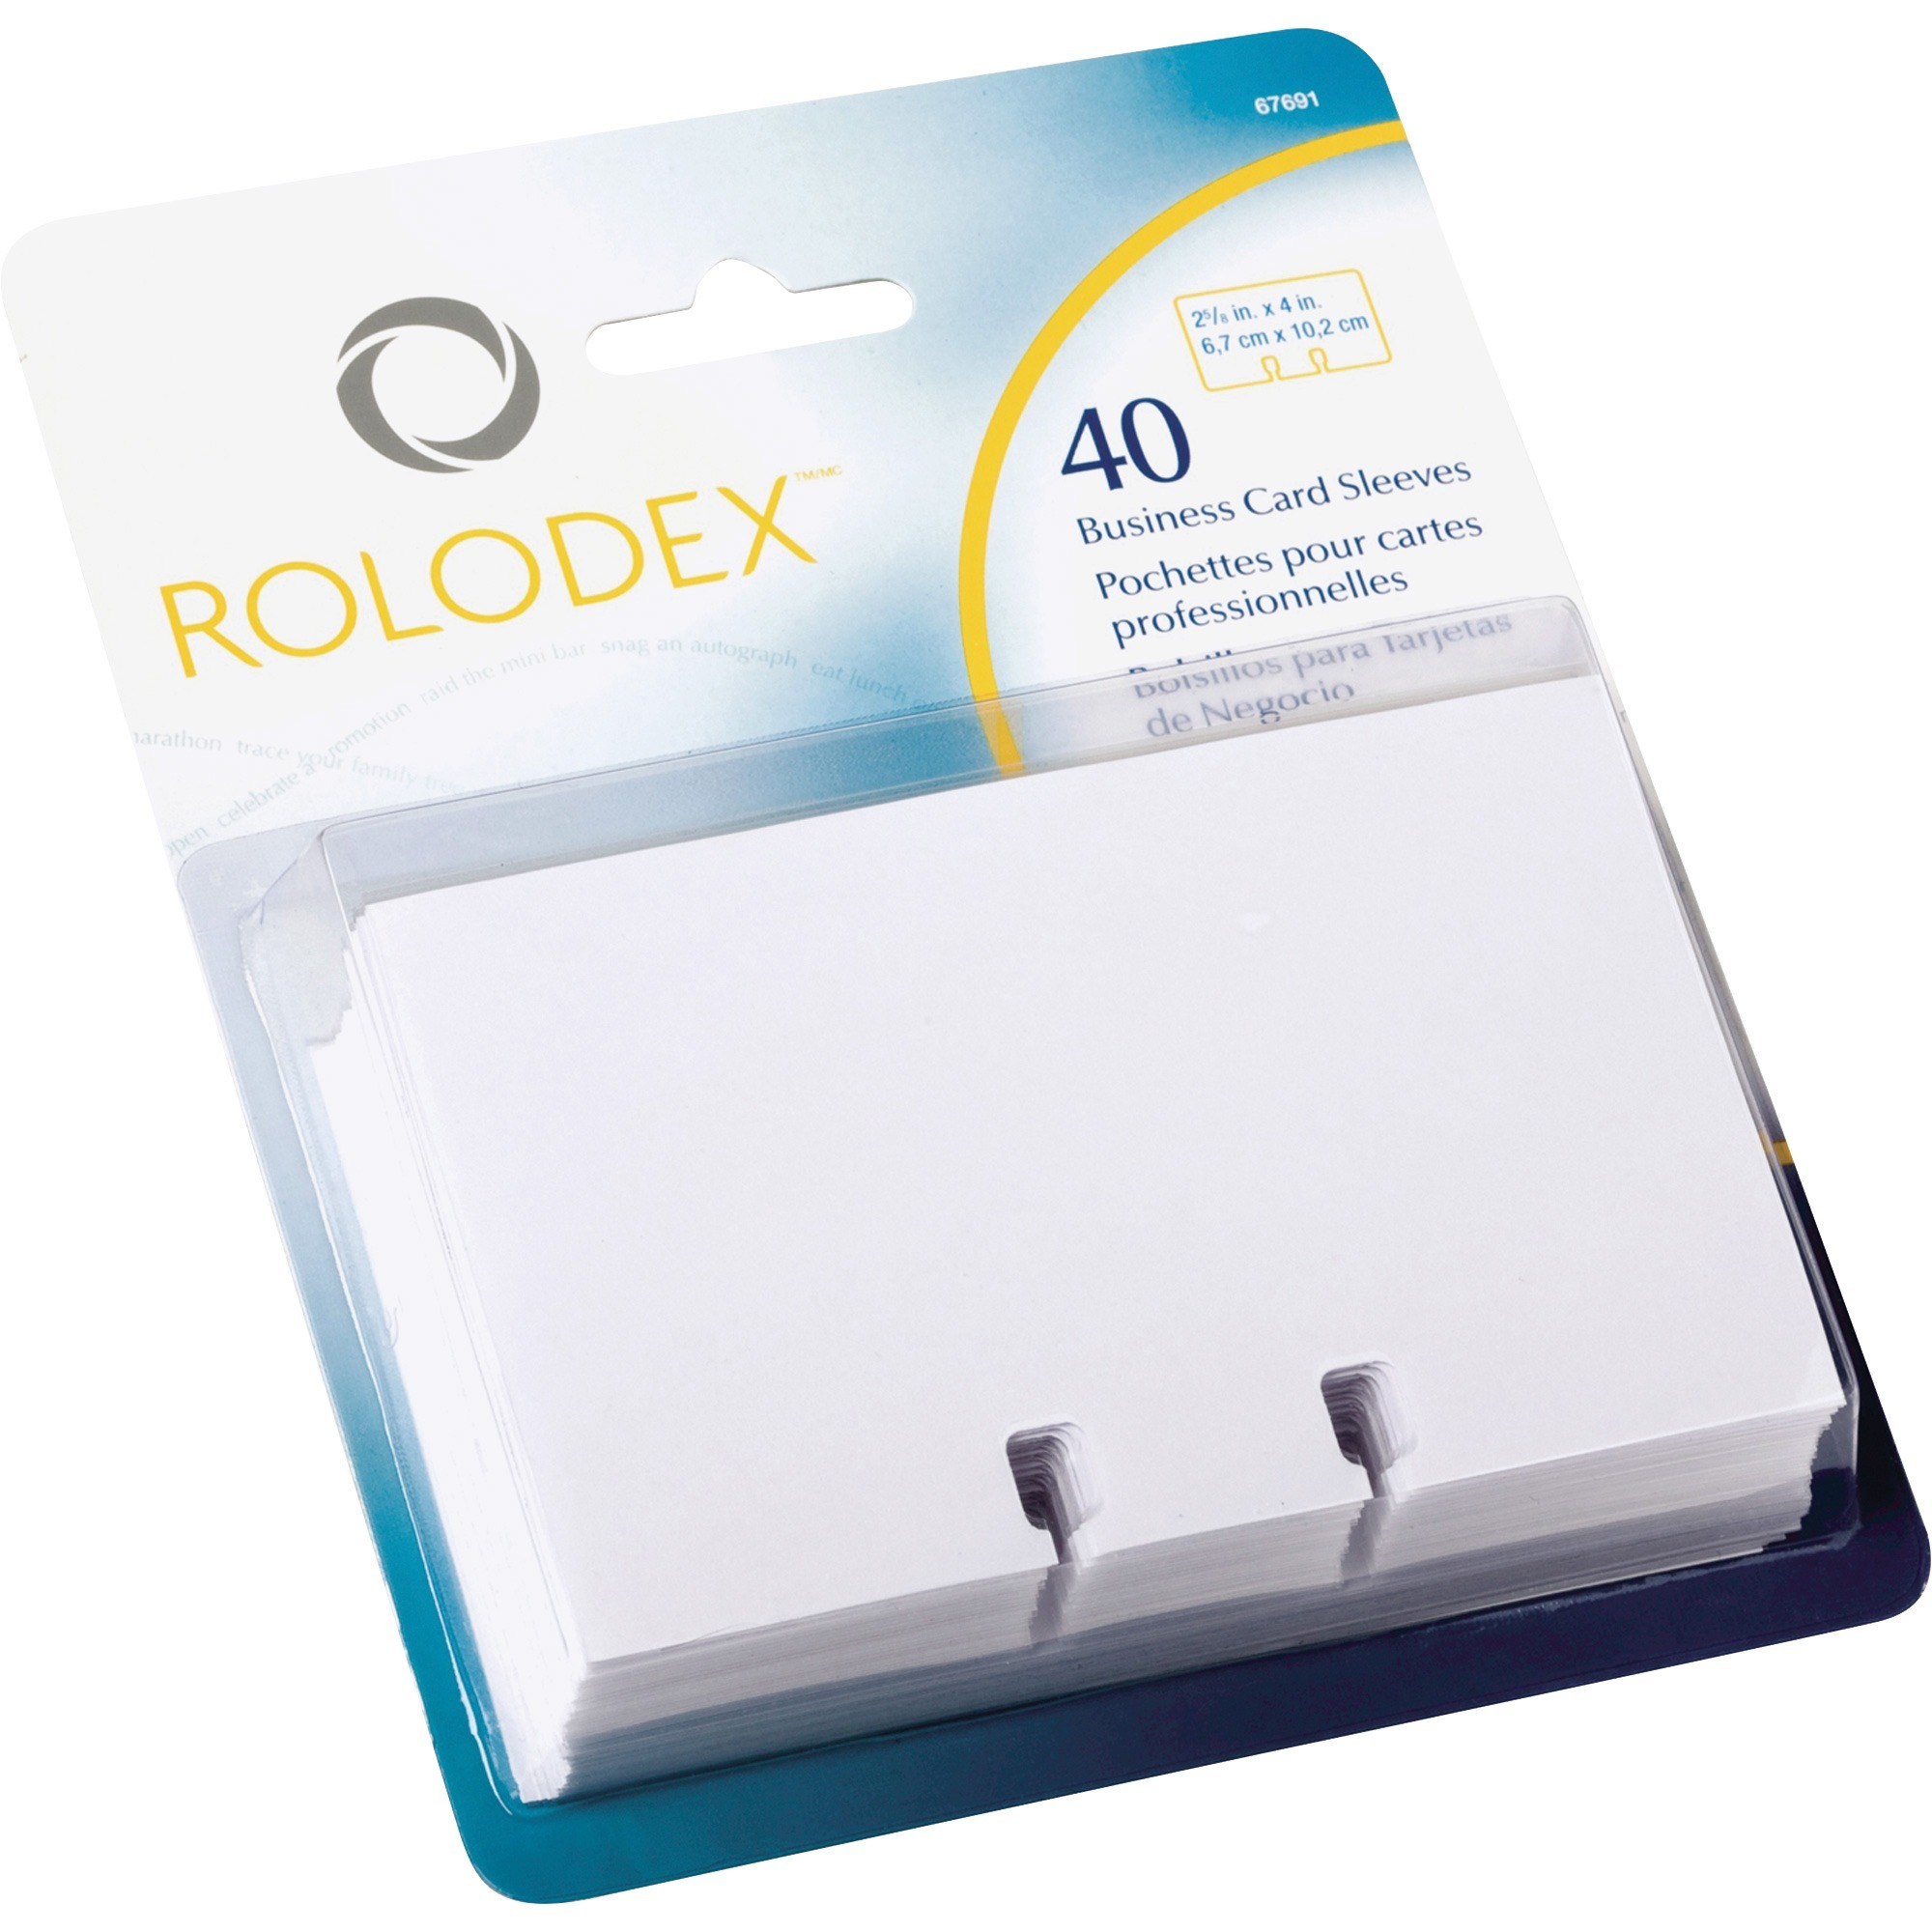 Rolodex Business Card File Refill Sleeves - Walmart.com